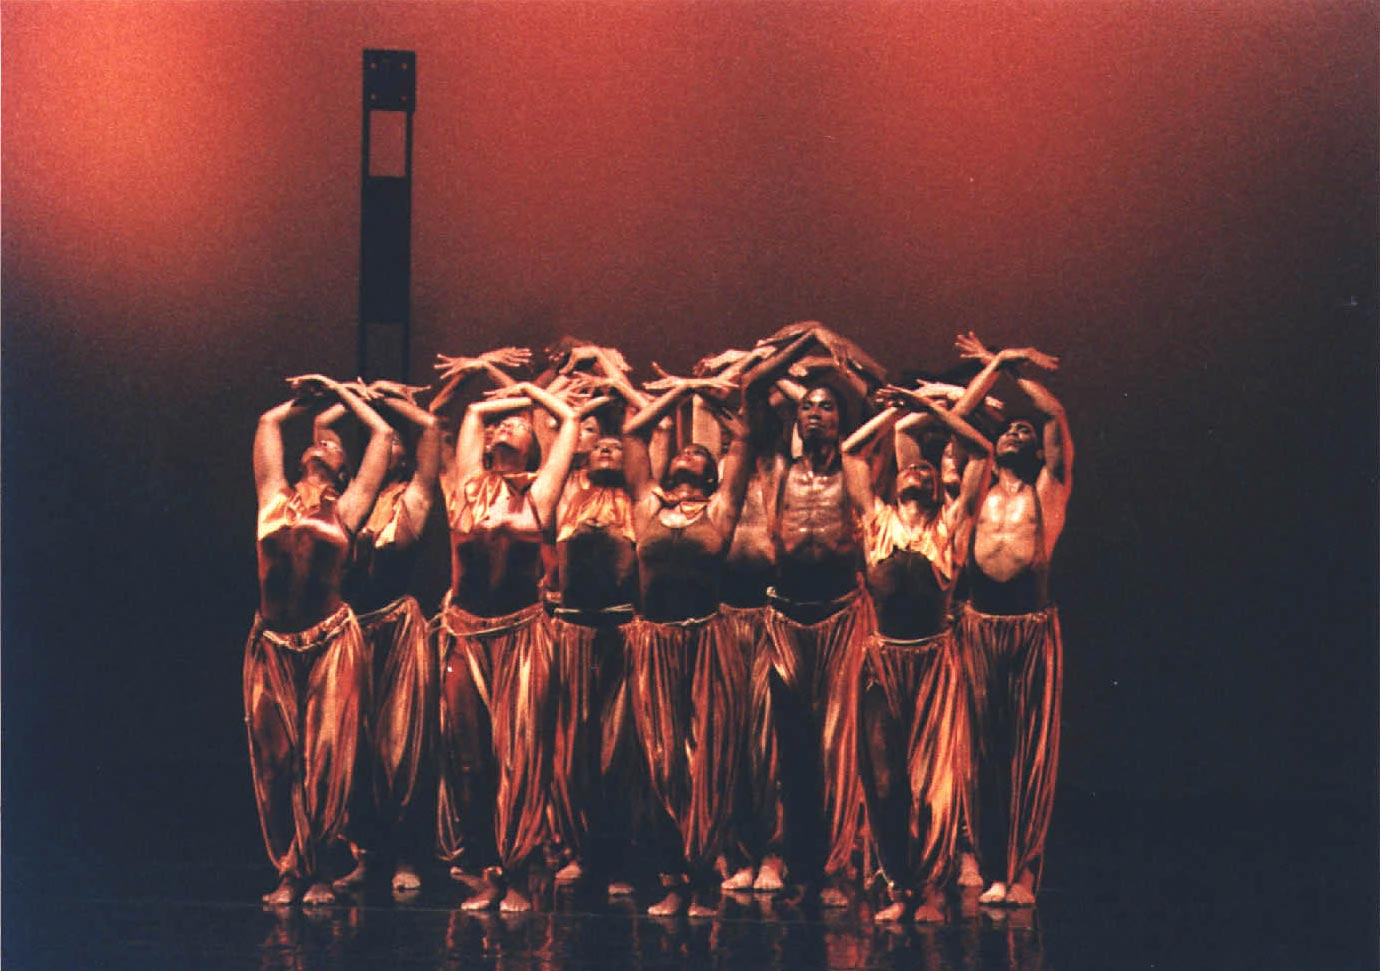 Blood Canticles, choreographed by Rex Nettleford. Photograph by Denis Valentine